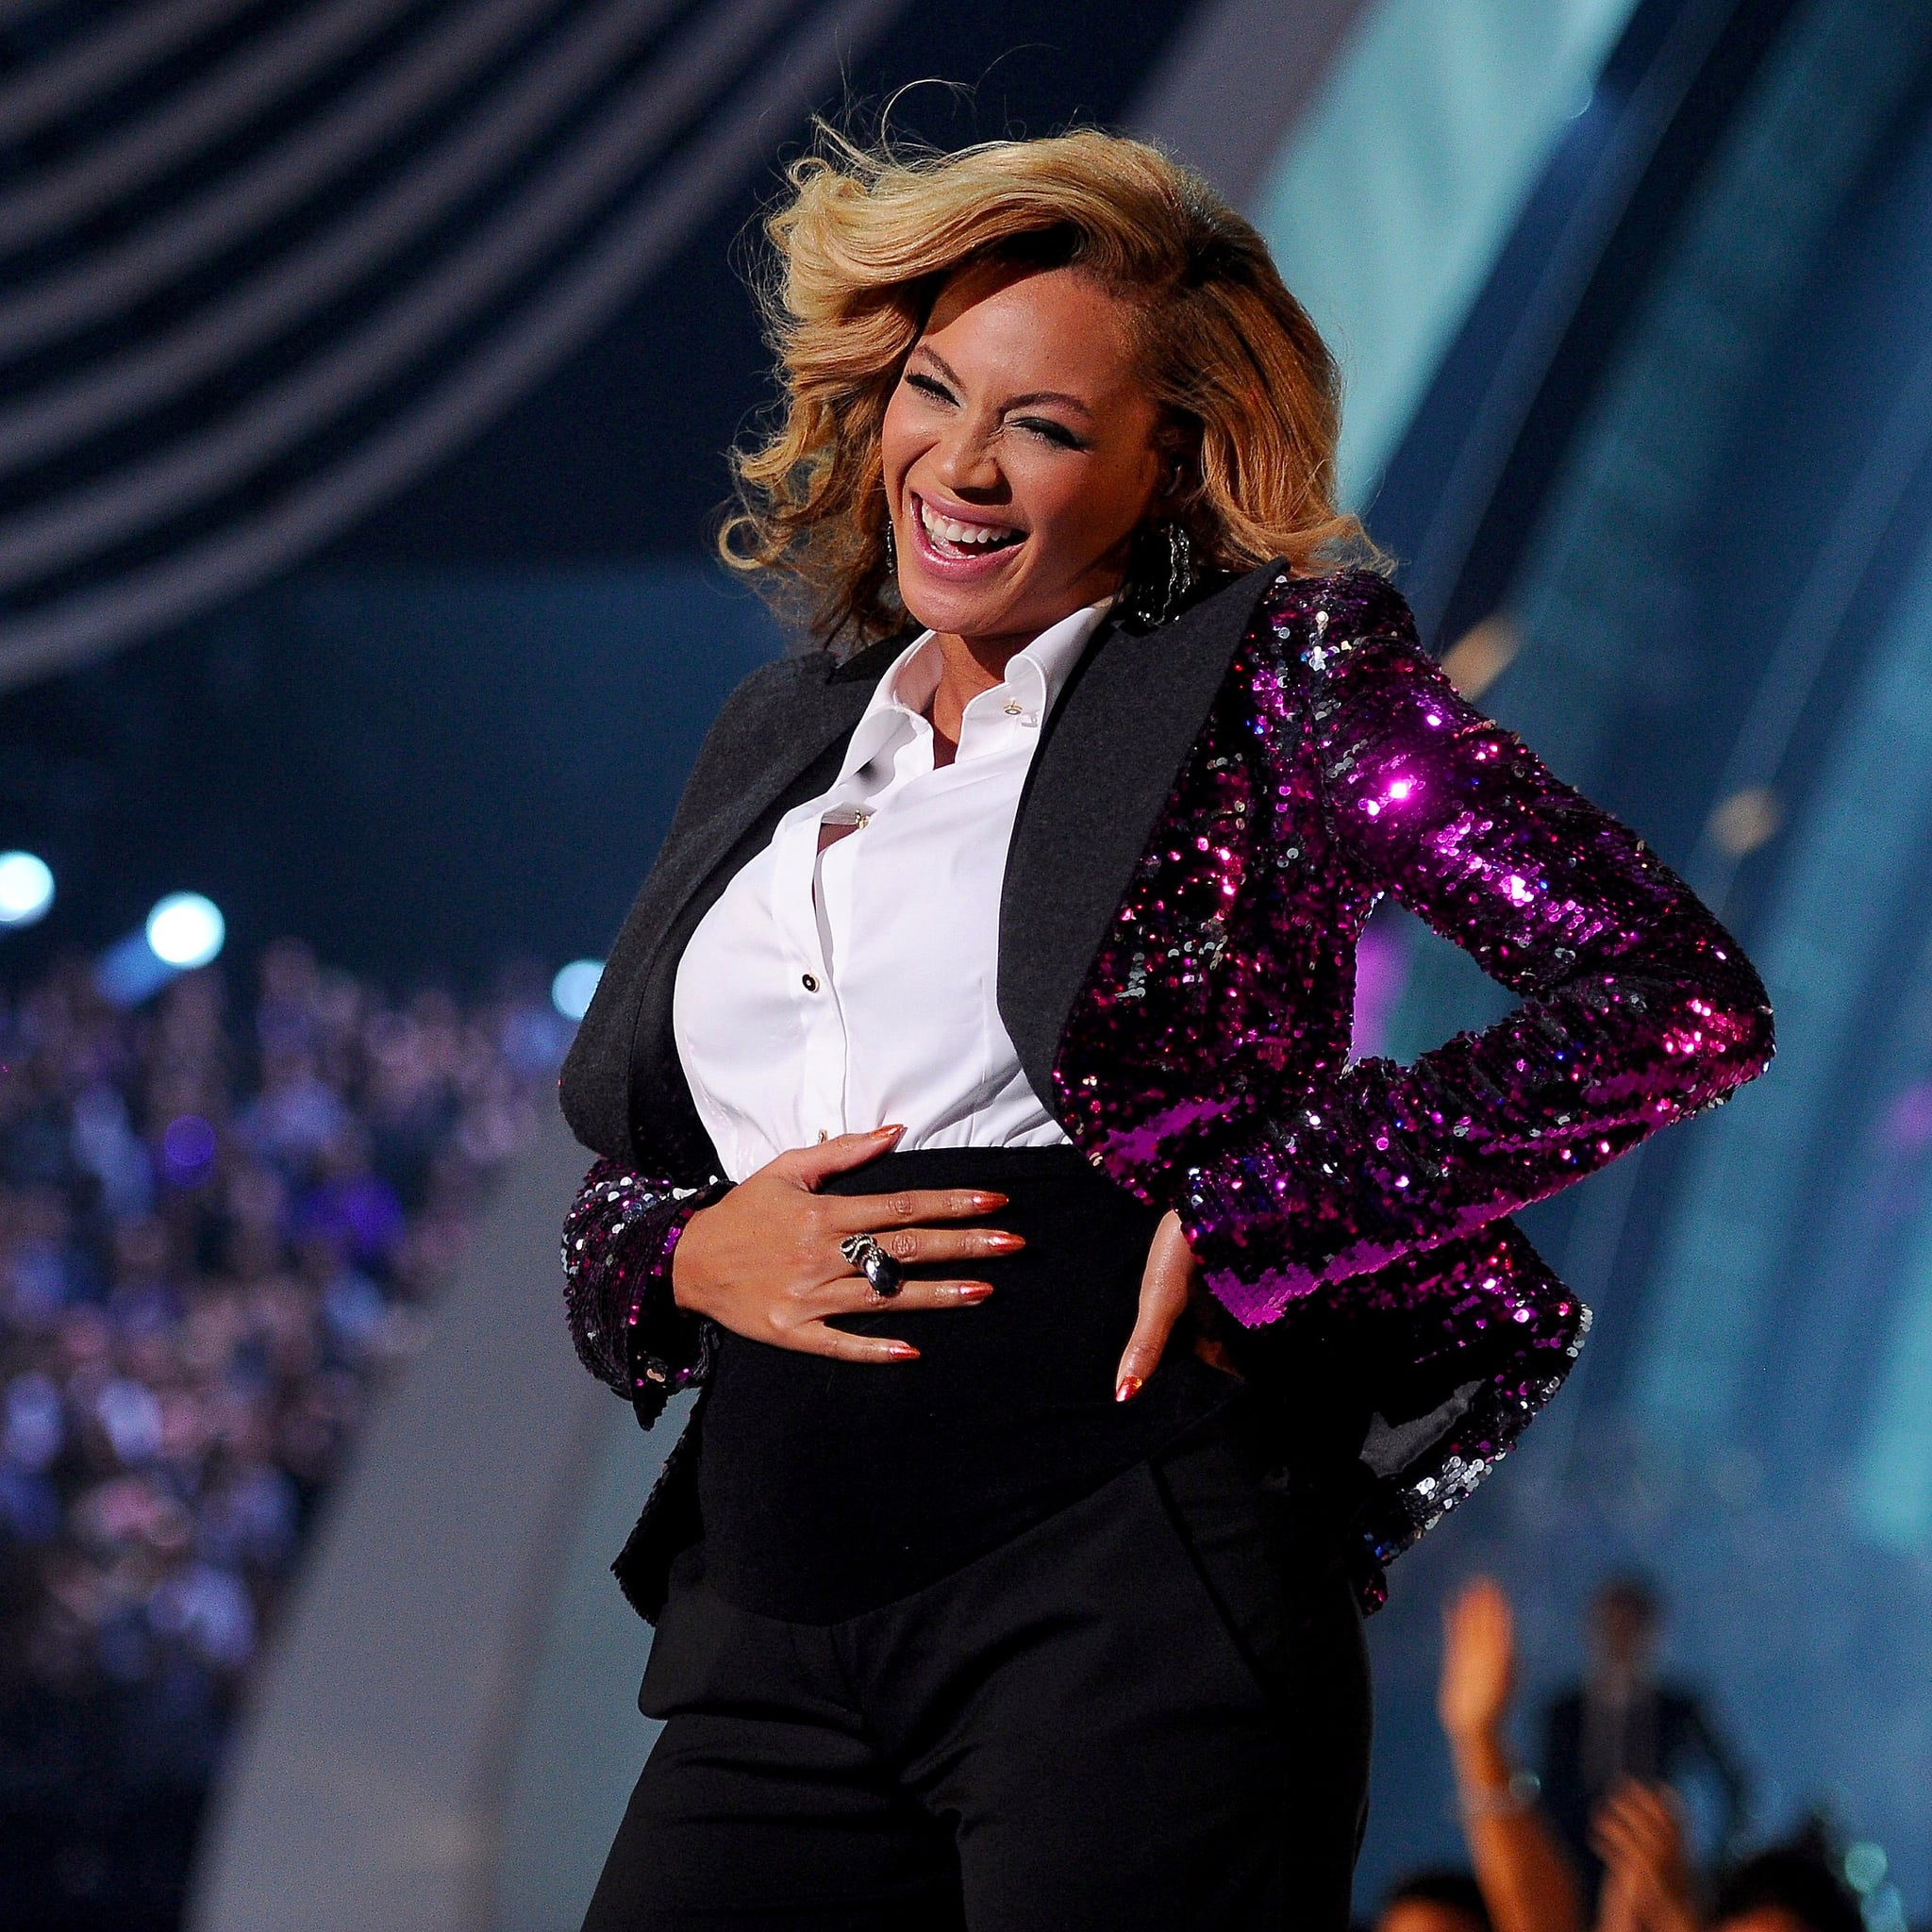 Pregnant-Beyonce-Knowles-Performing-2011-VMA-Video.jpg